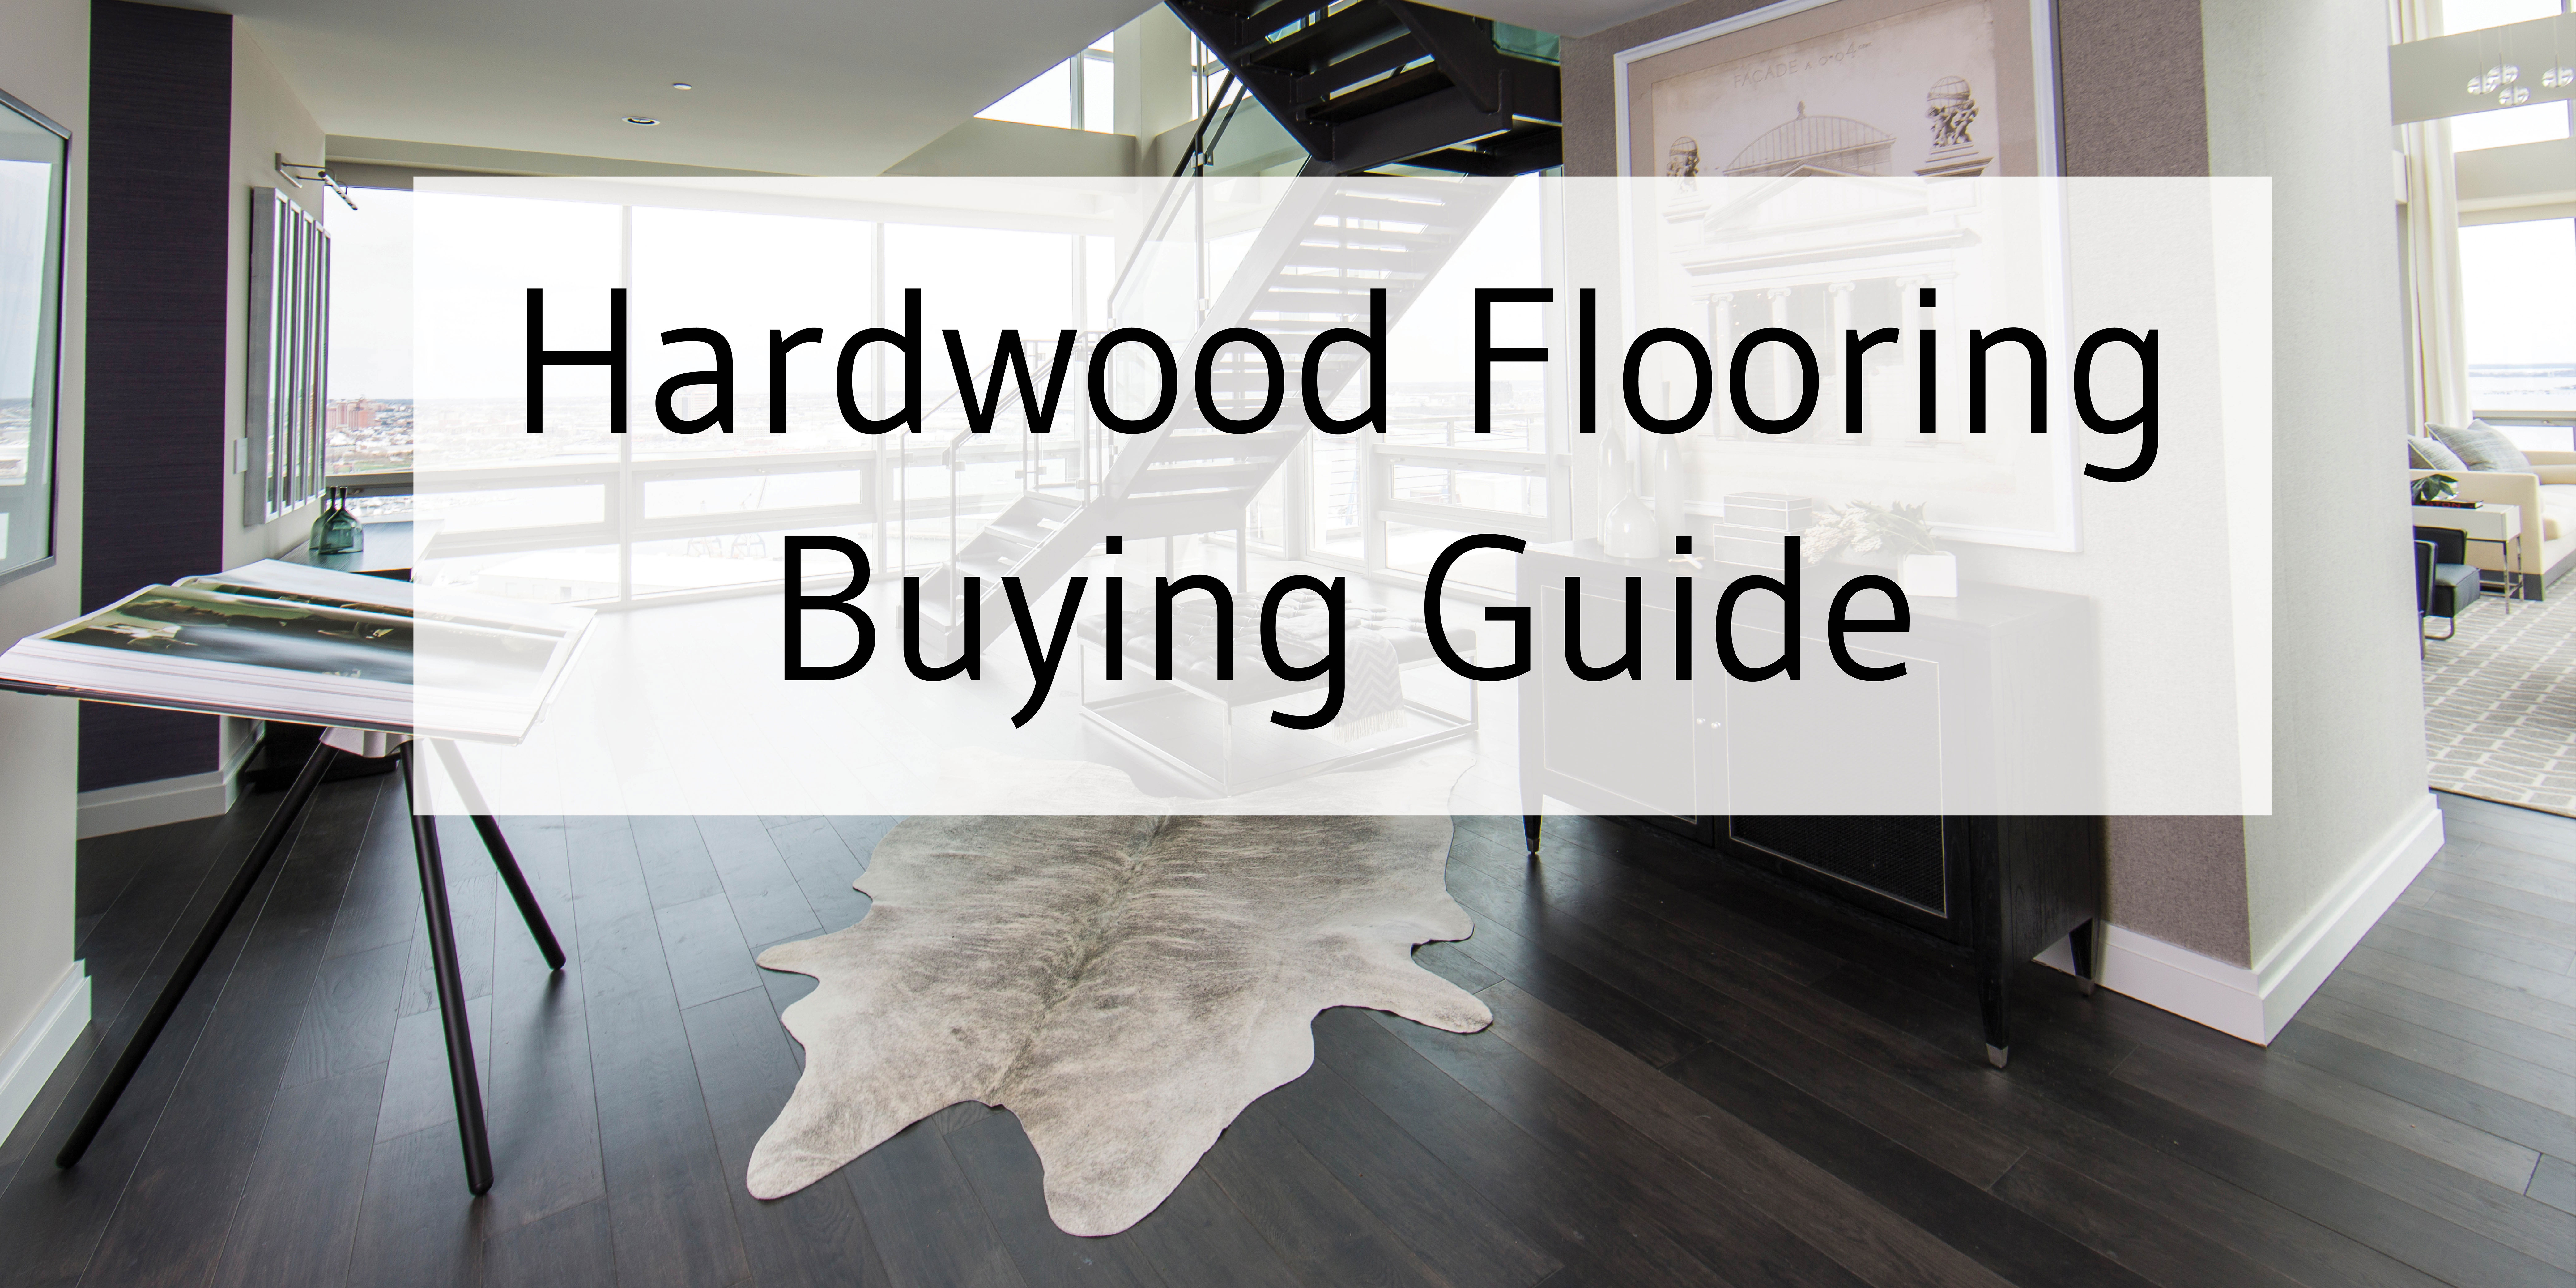 Buying guide: how to shop for hardwood floors.